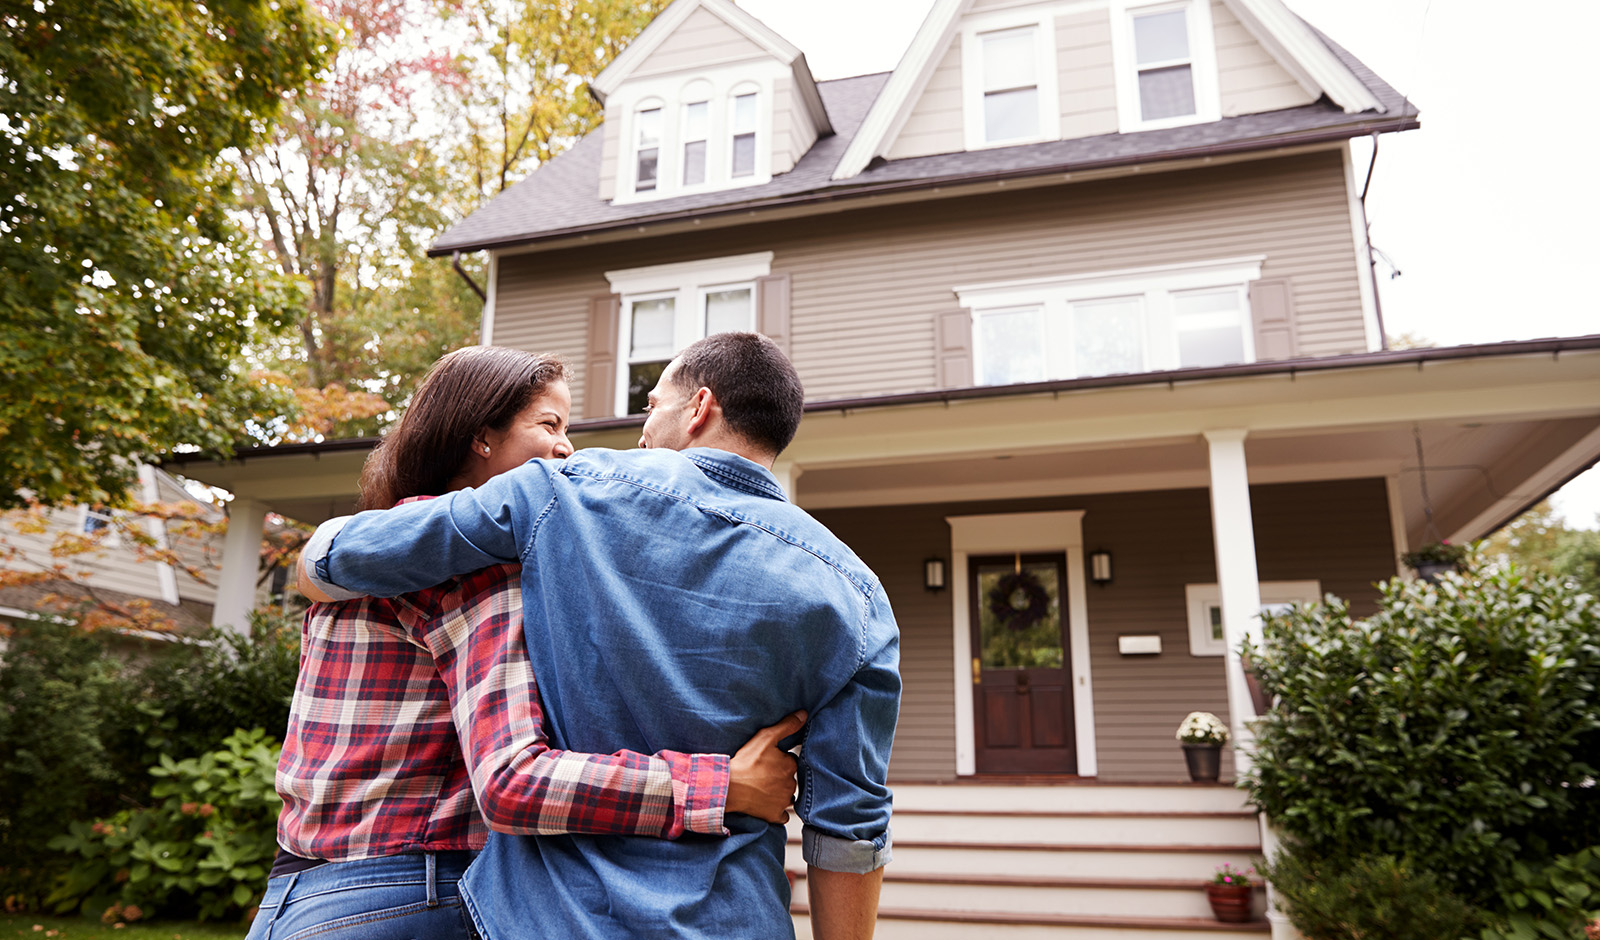 incoprorate-luxury-into-your-home-main-image-happy-couple-outside-new-home